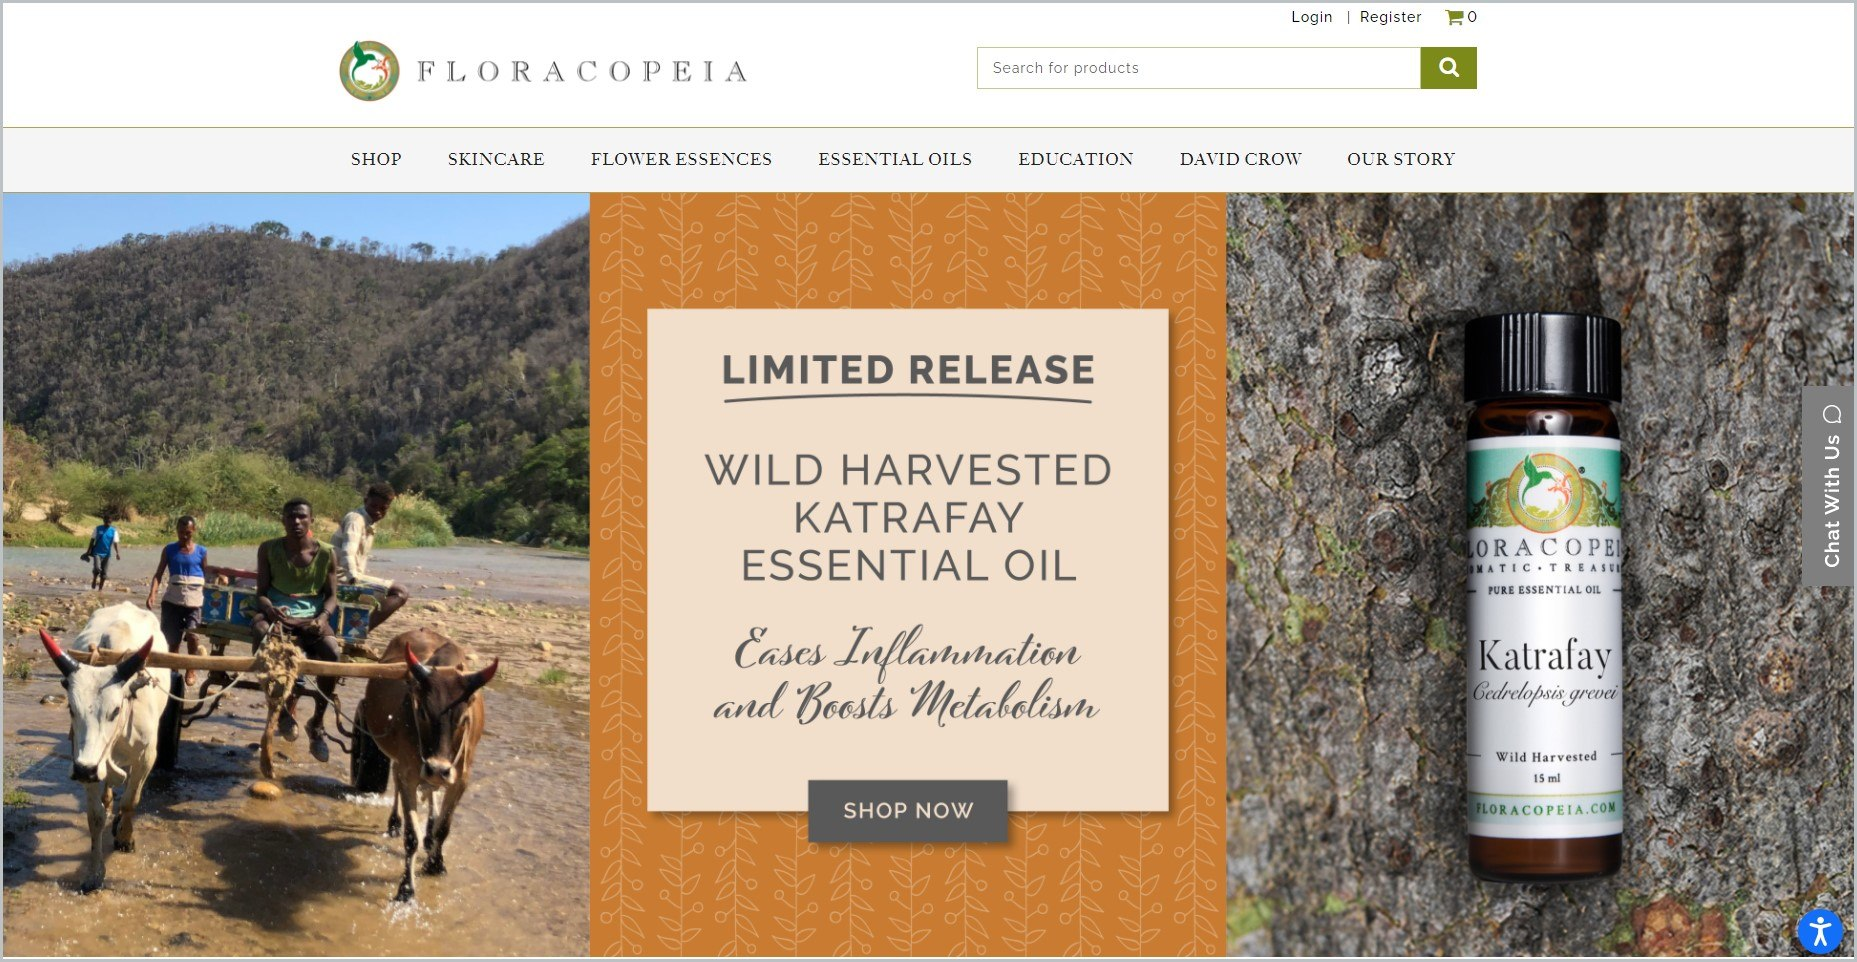 screenshot of Floracopeia homepage with image of a bottled essential oil and local farmers